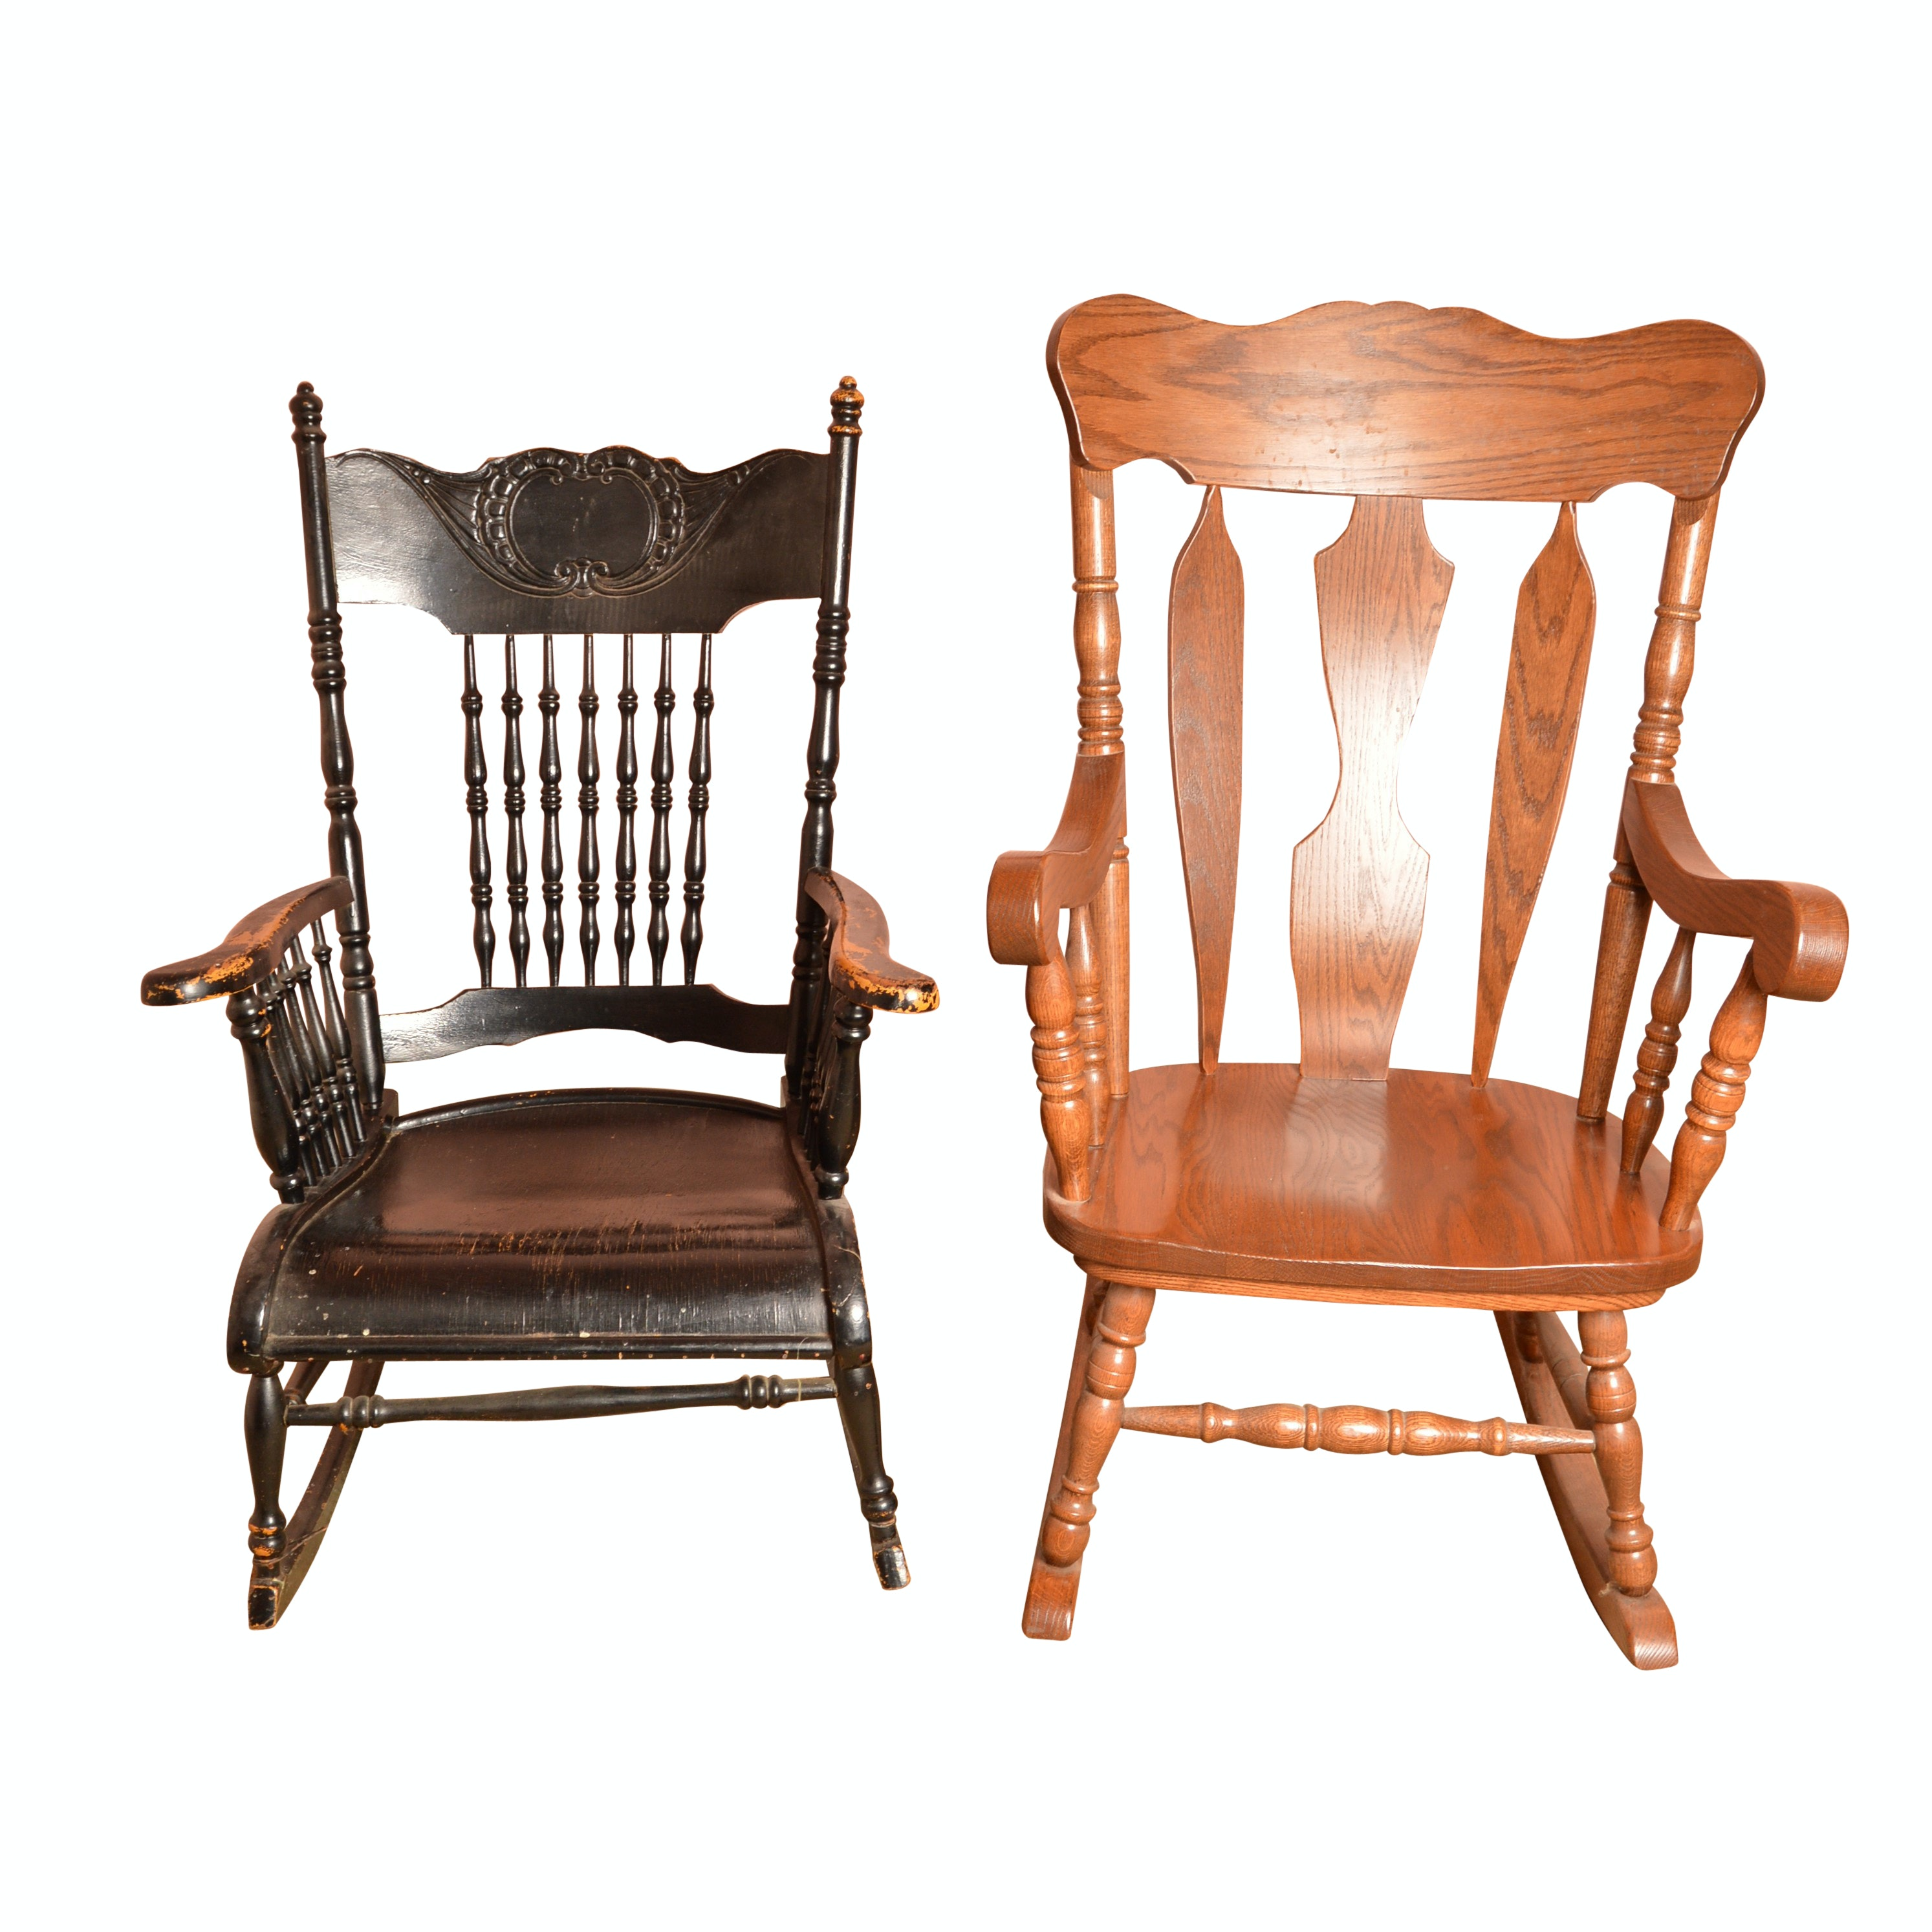 Pair of Vintage Rocking Chairs